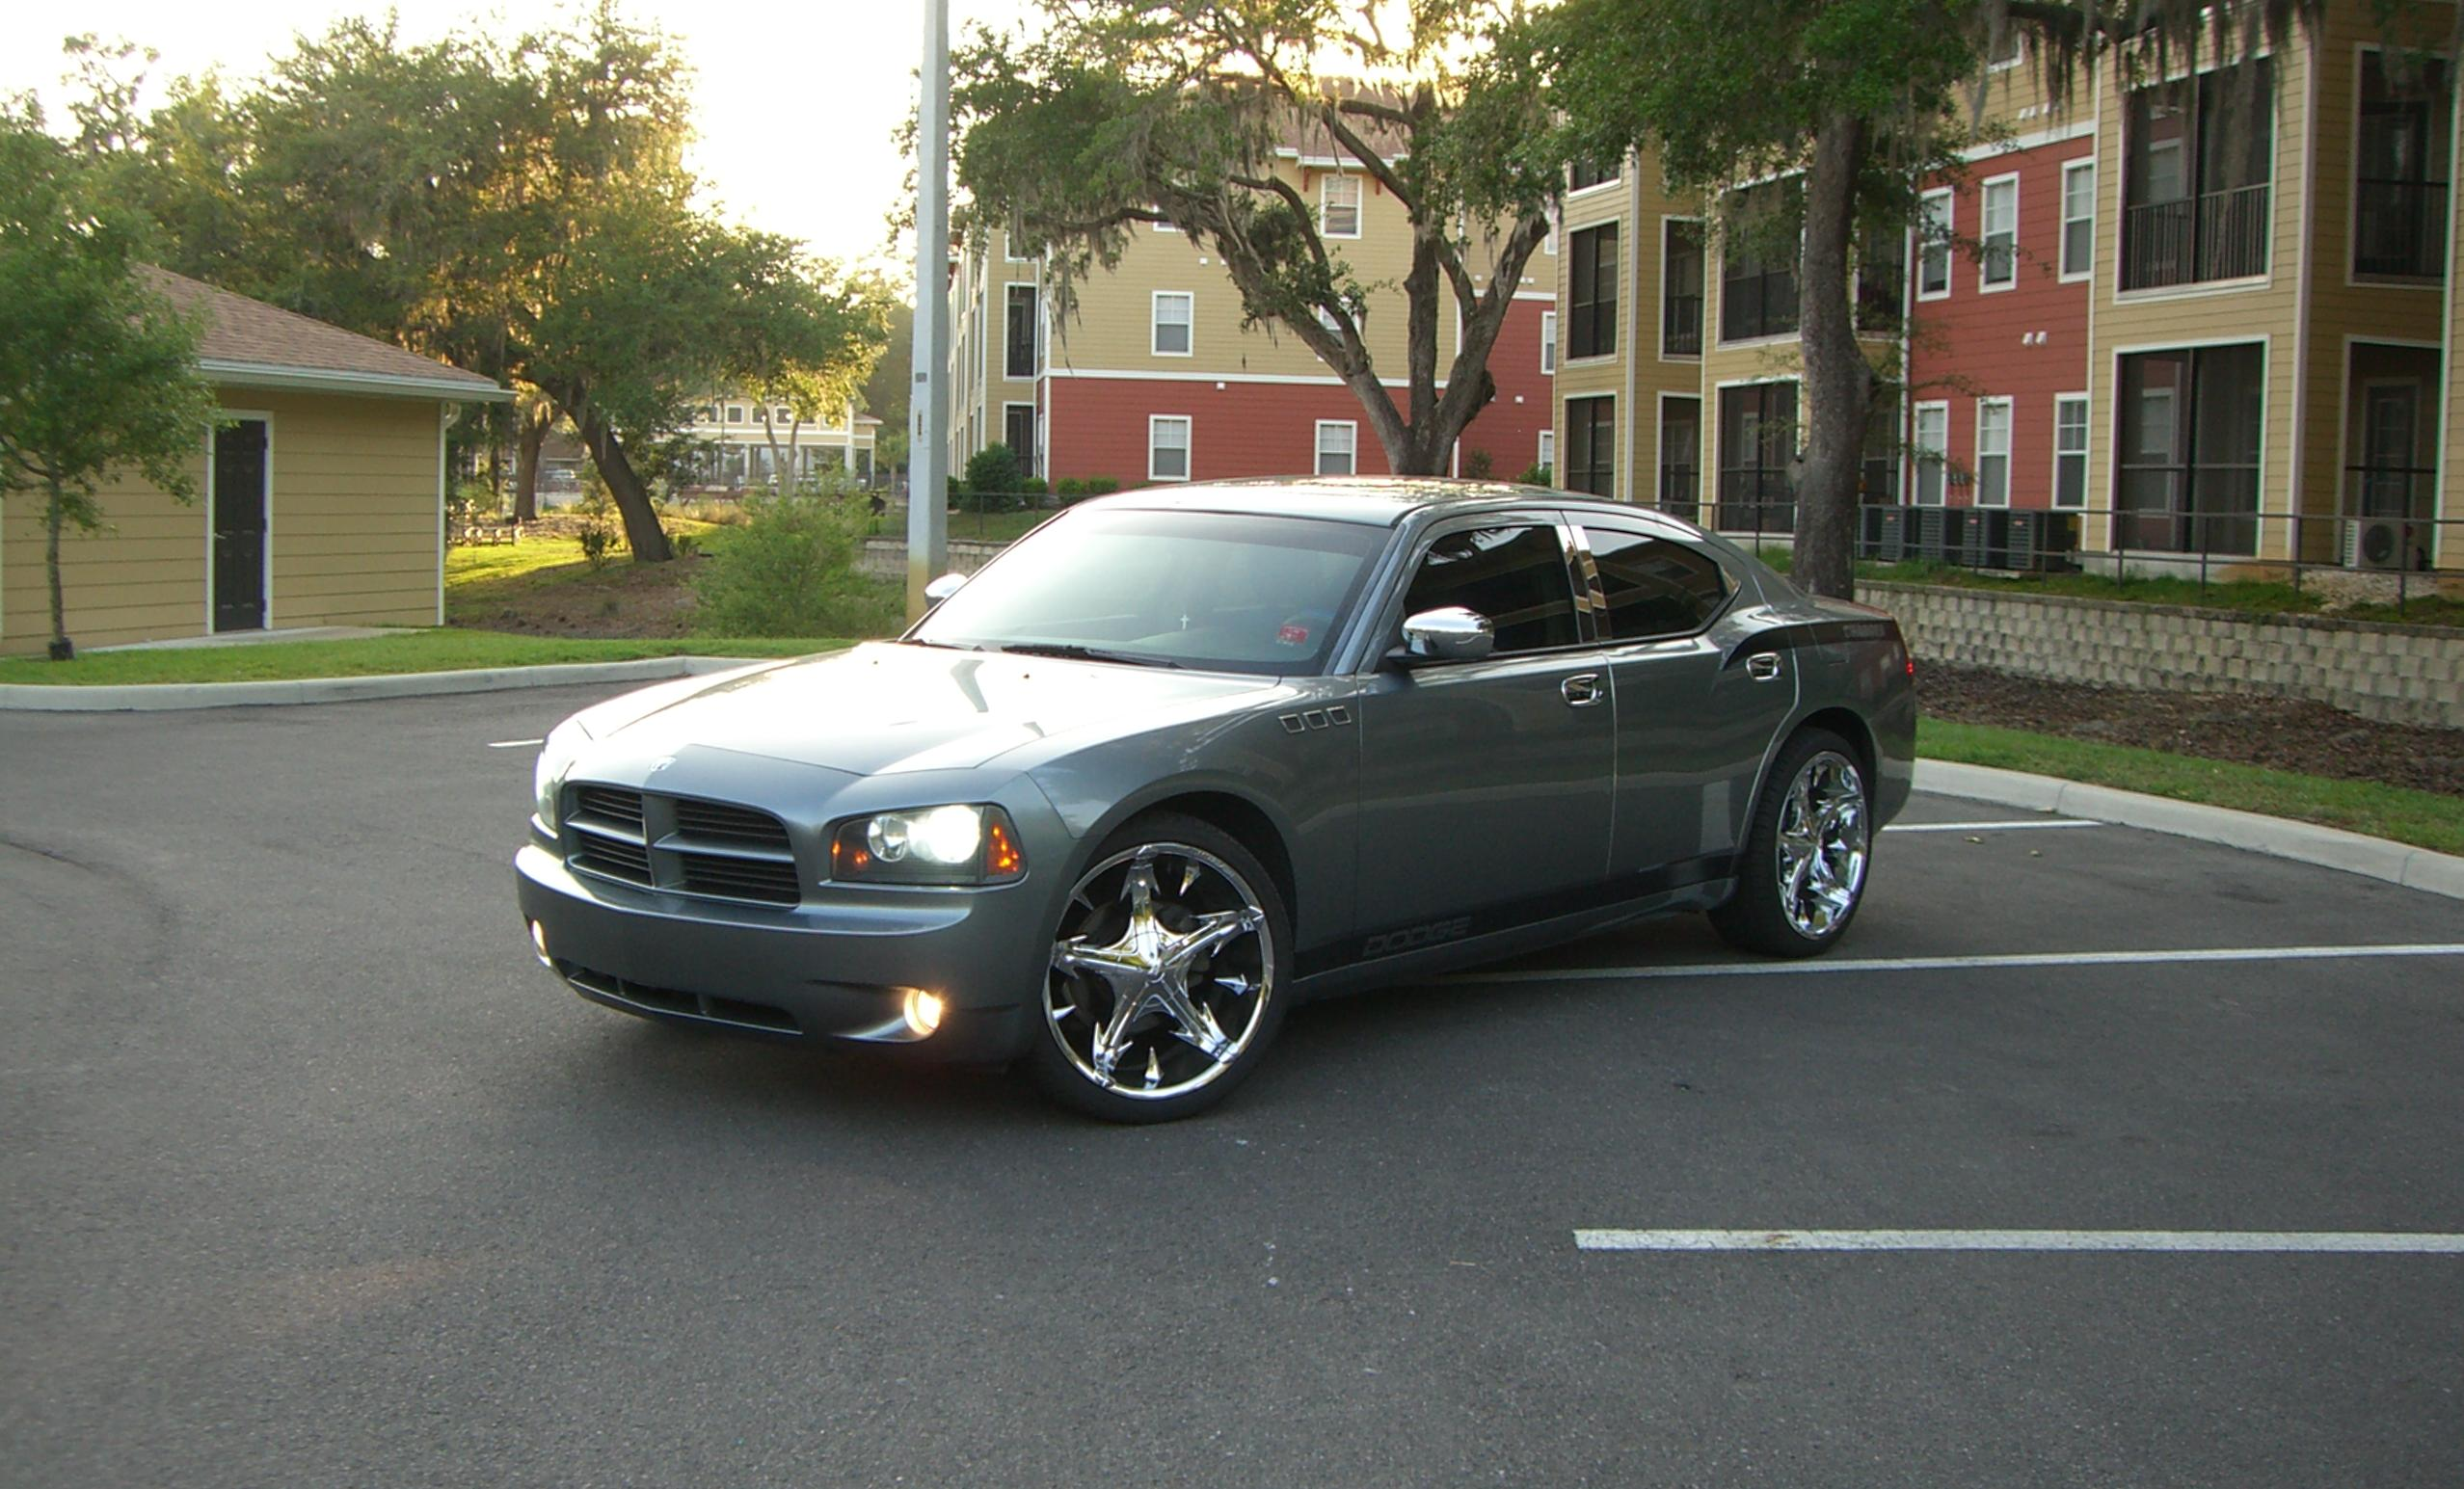 2007 Dodge Charger 2.7 Engine For Sale - Best Charger Photos ...